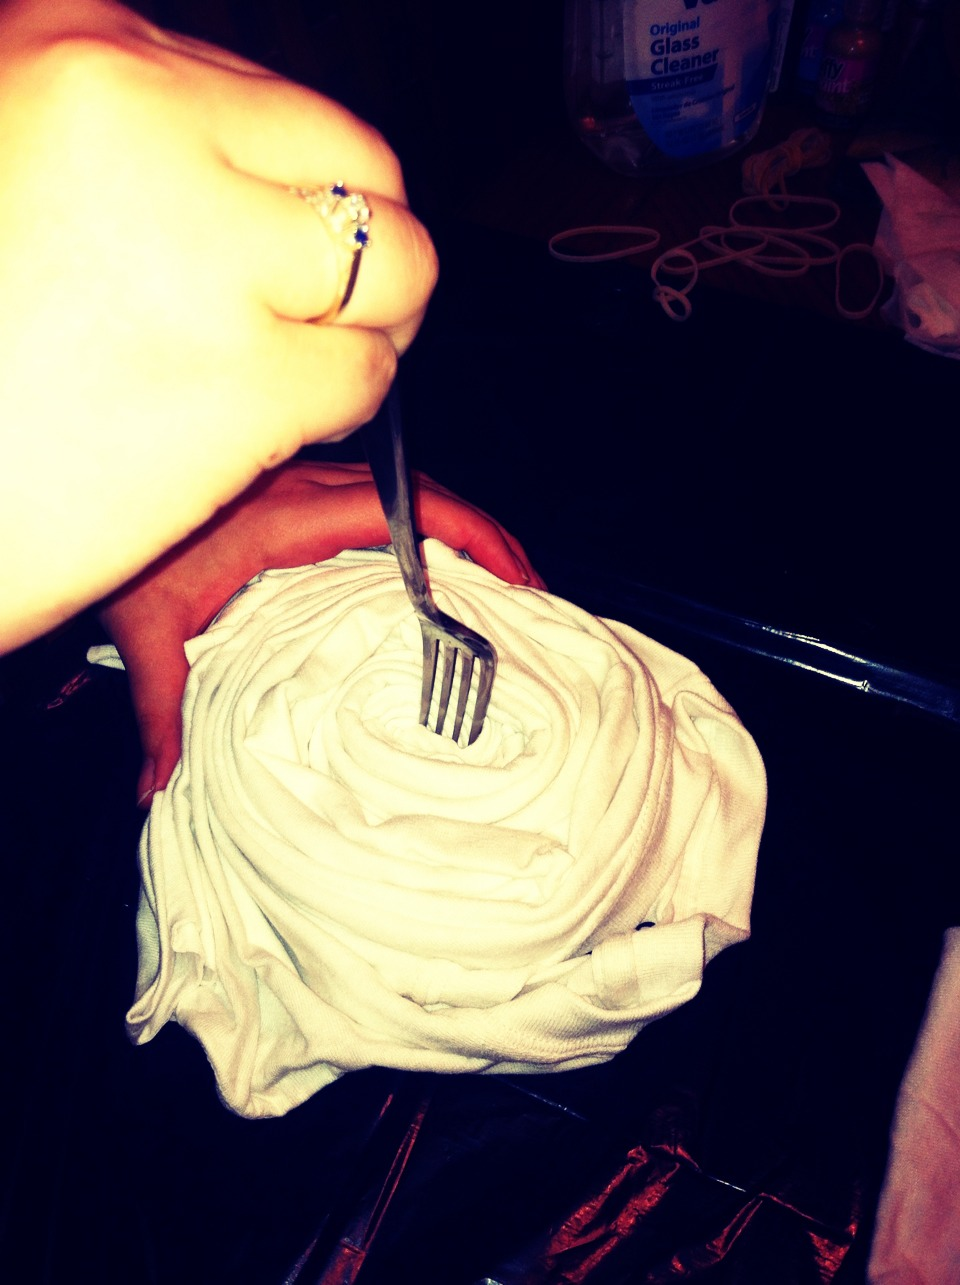 Swirl your shirt with a fork instead of using your fingers!